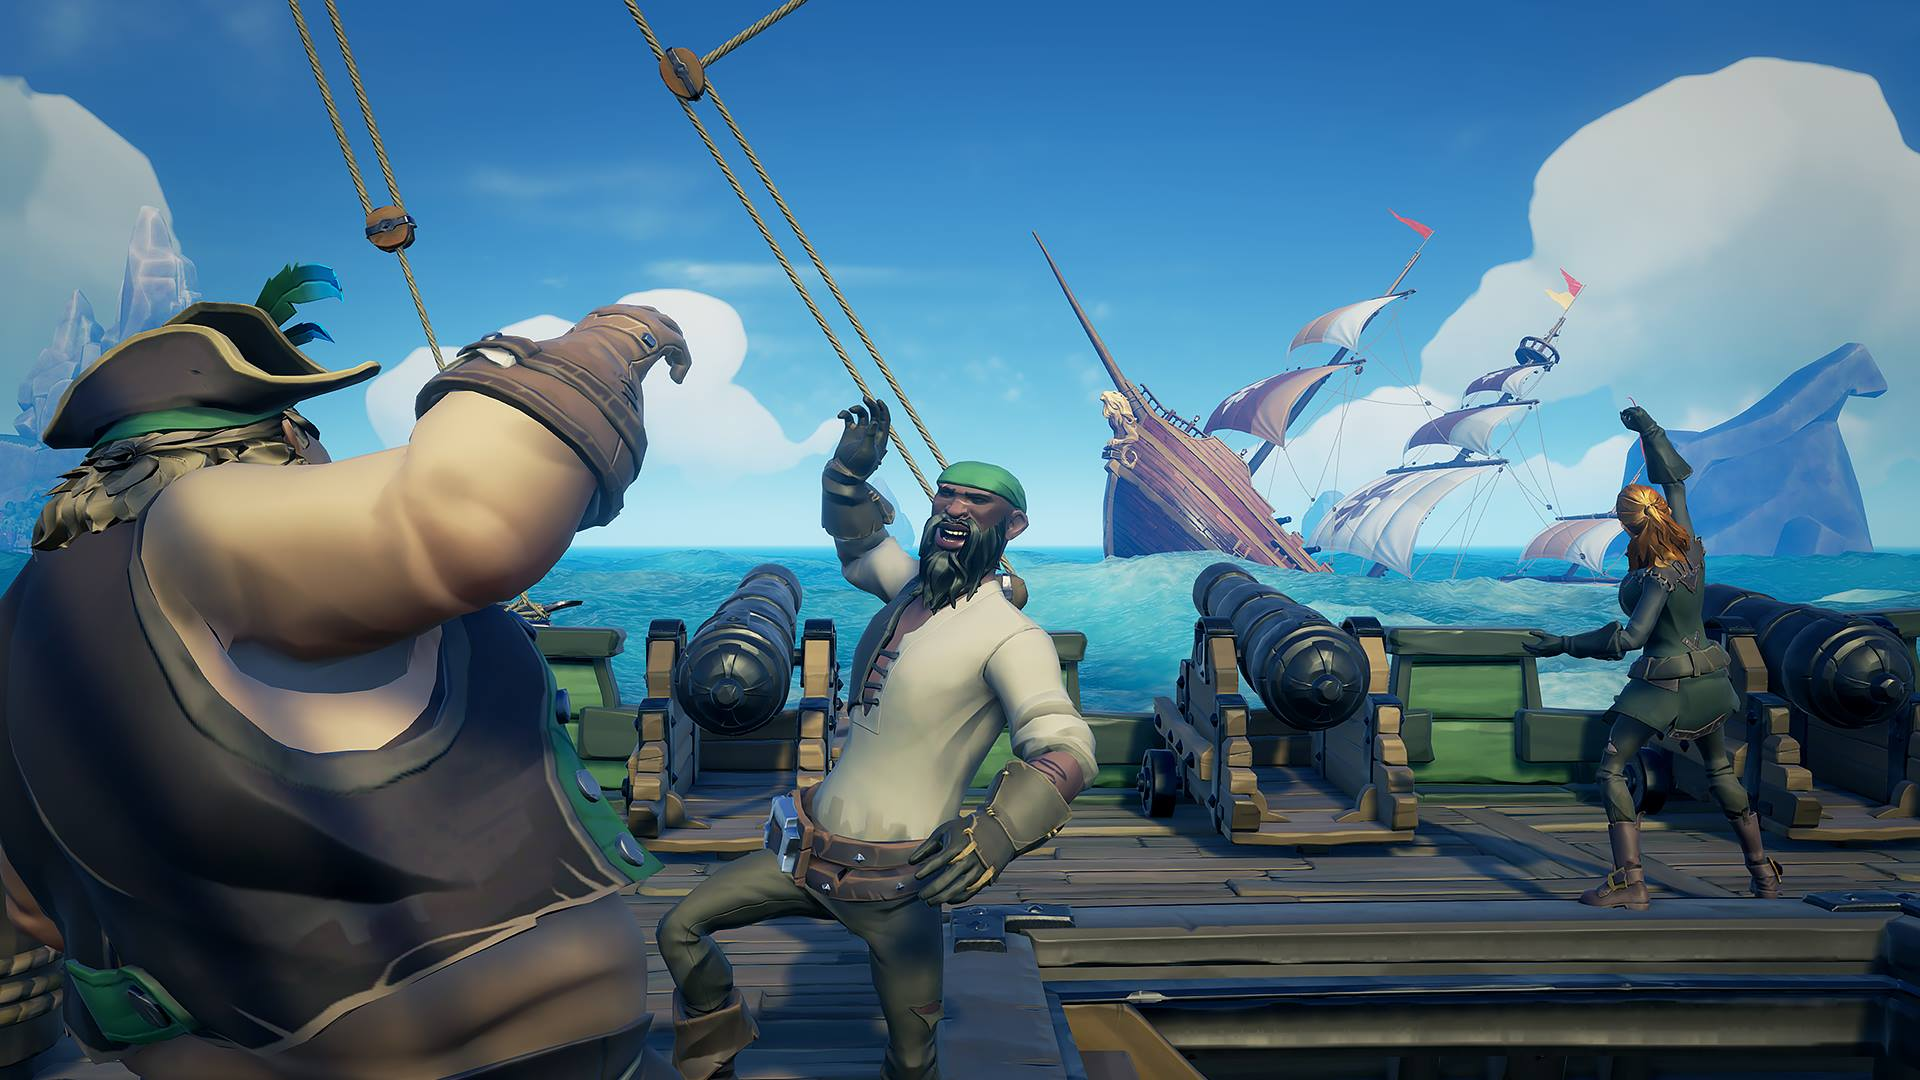 Tomorrow S Sea Of Thieves Patch Adds The Ability To Discard